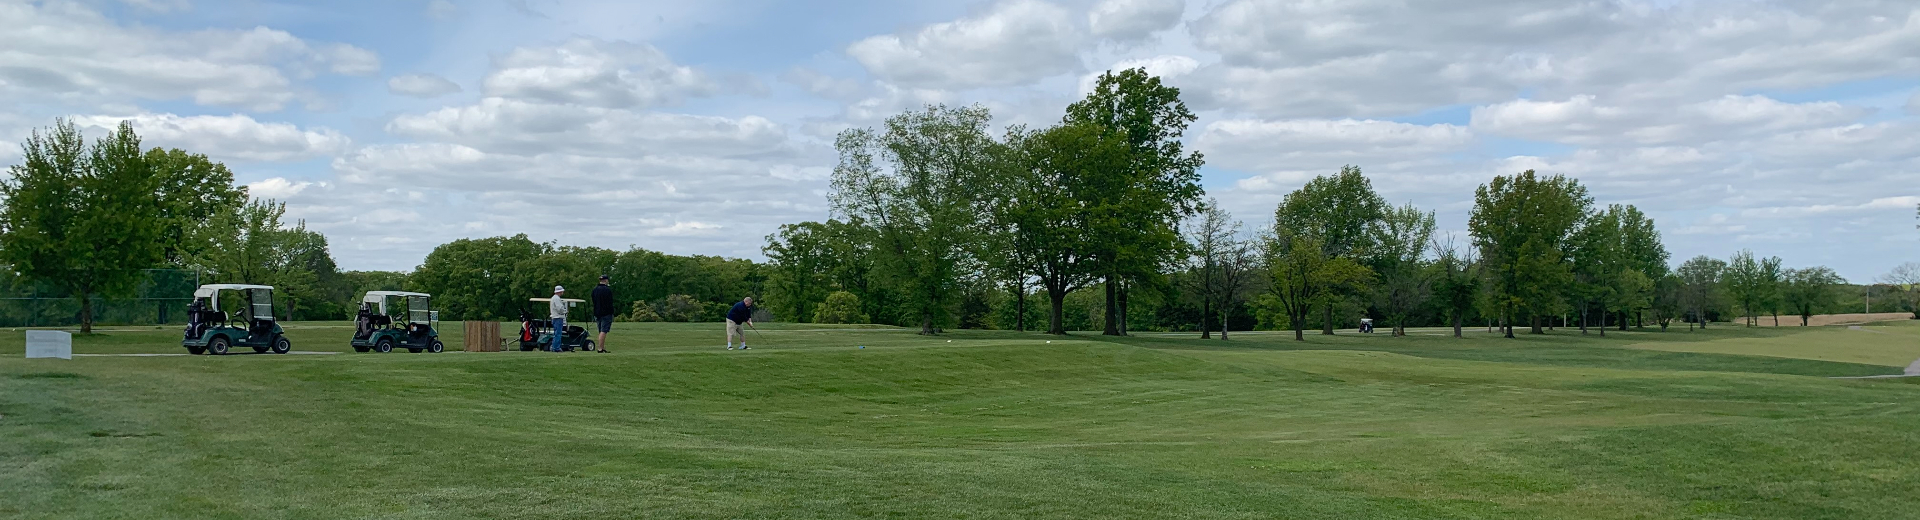 A group of golfers play the course at Warrenton